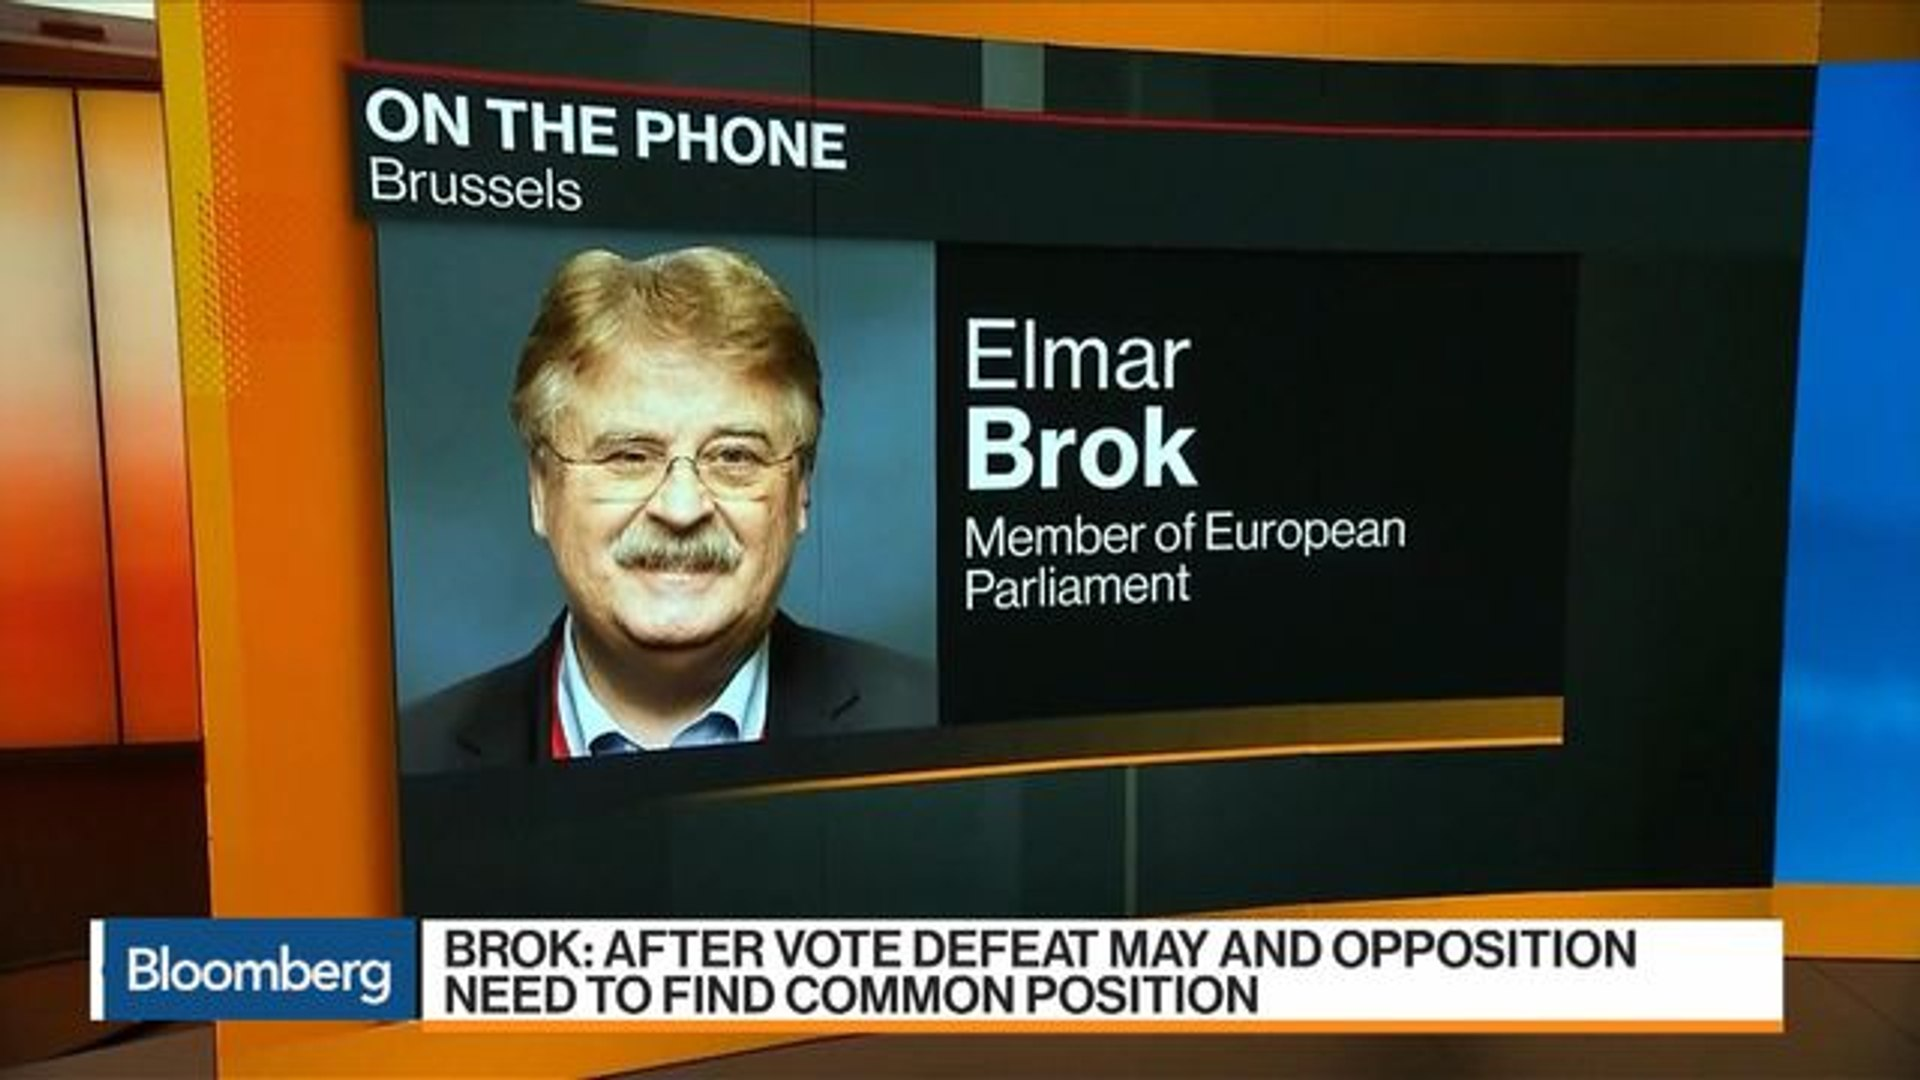 European Parliament's Brok Says May, Opposition Need to Find Common Position